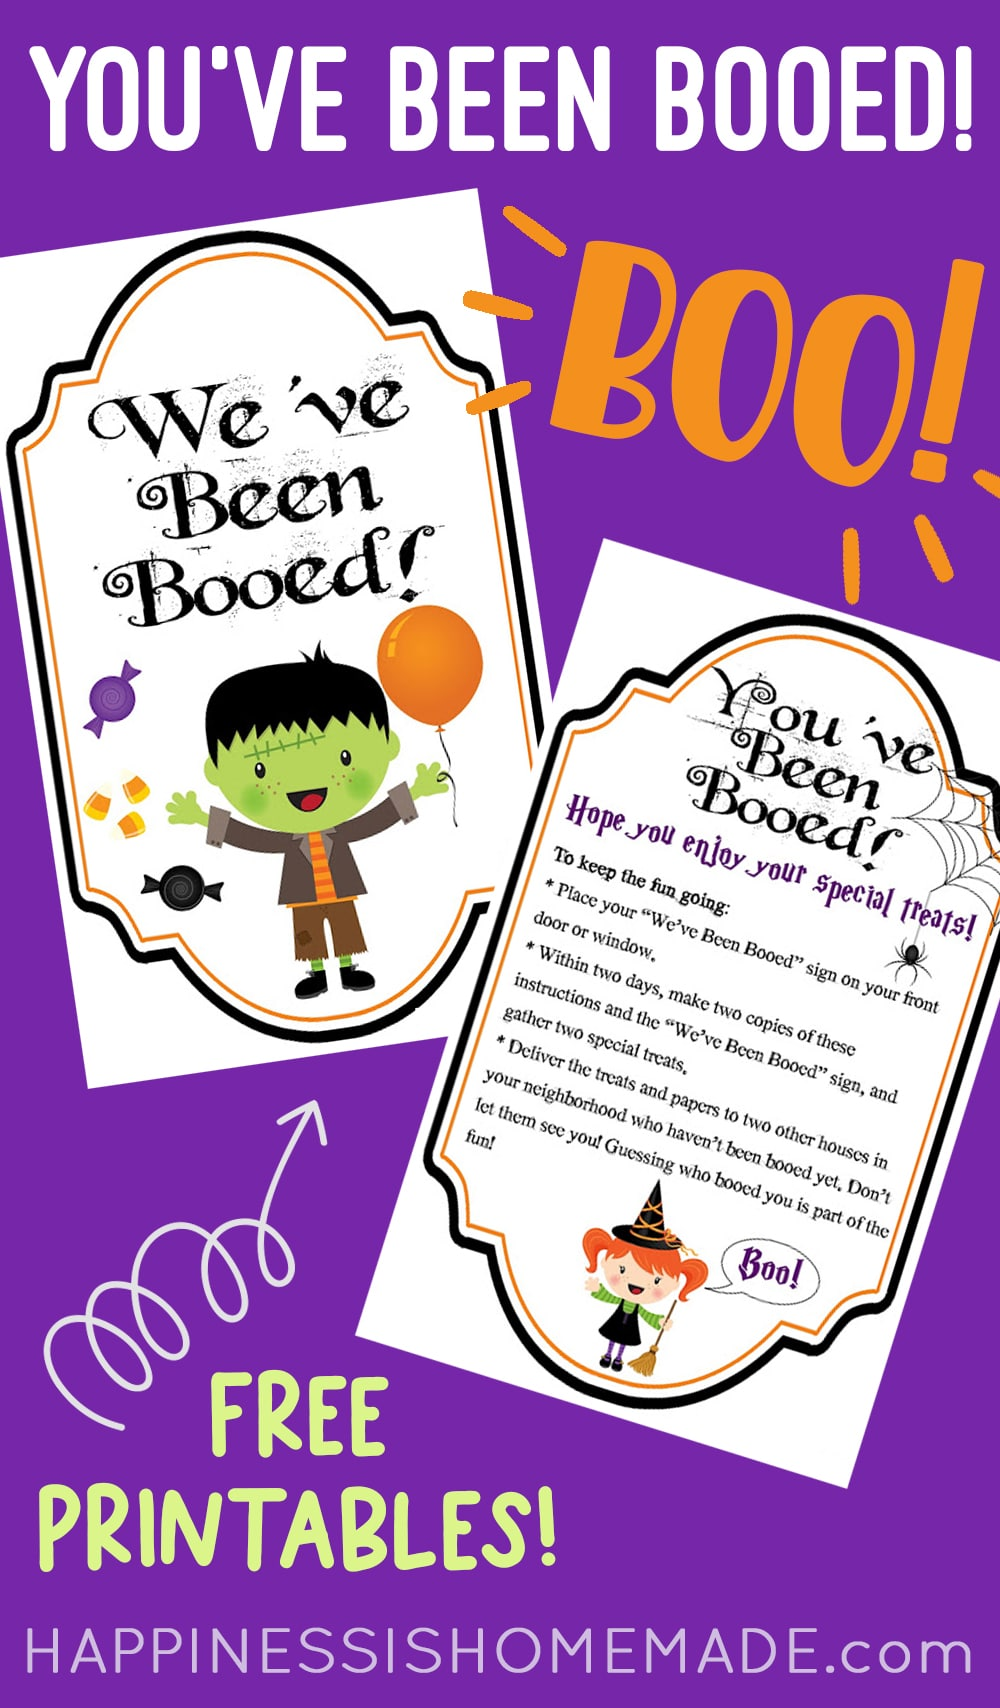 You've Been Booed and Weve Been Booed Printables on Purple Background